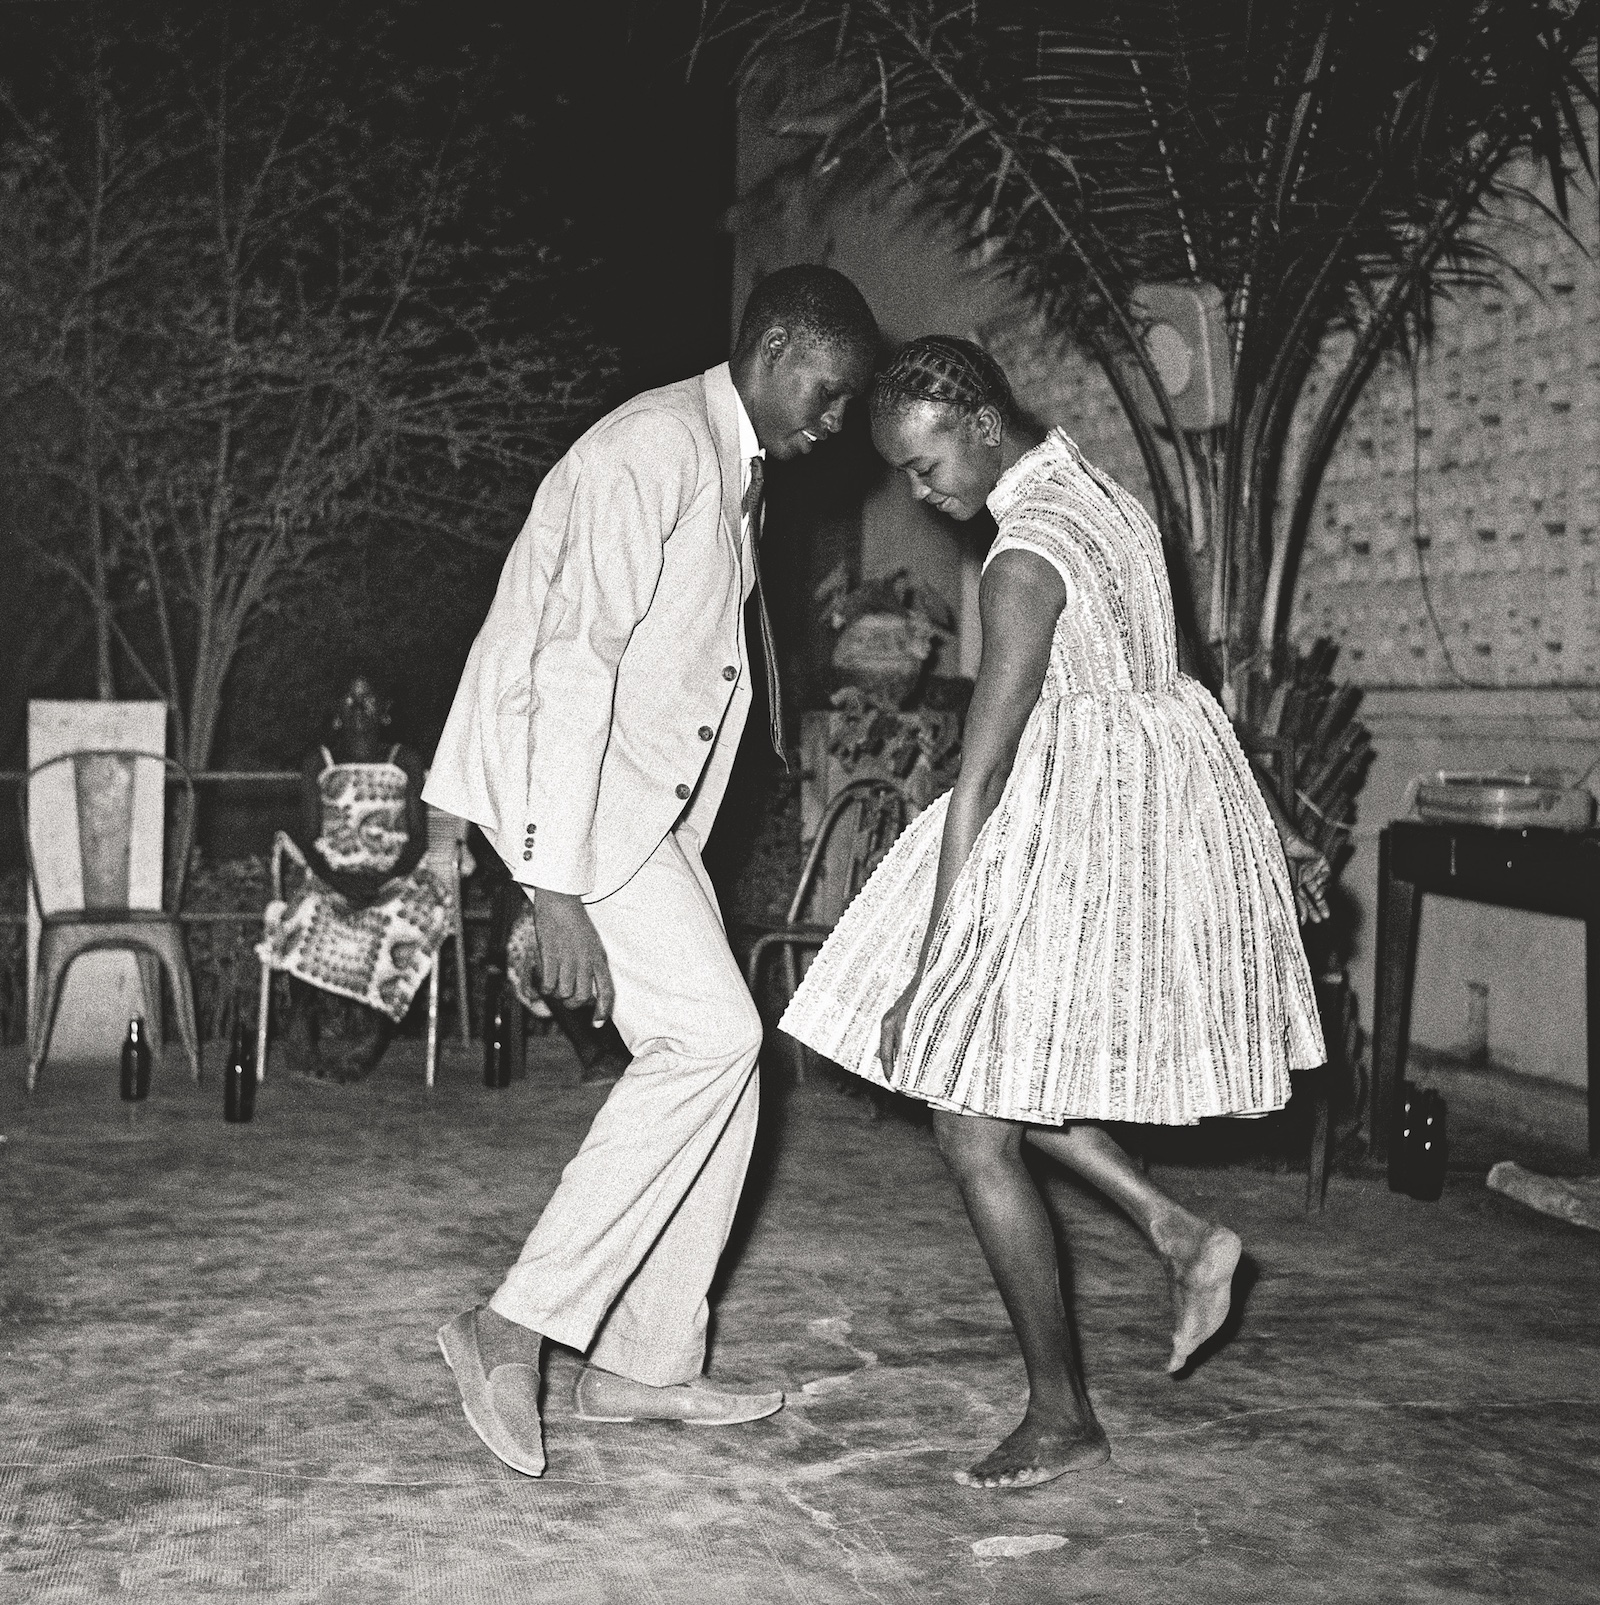 Nuit de Noël, 1963. Collection Fondation Cartier pour l'art contemporain, Paris © Malick Sidibé Extract from Mali Twist (Éditions Xavier Barral, Fondation Cartier pour l'art contemporain, 2017)